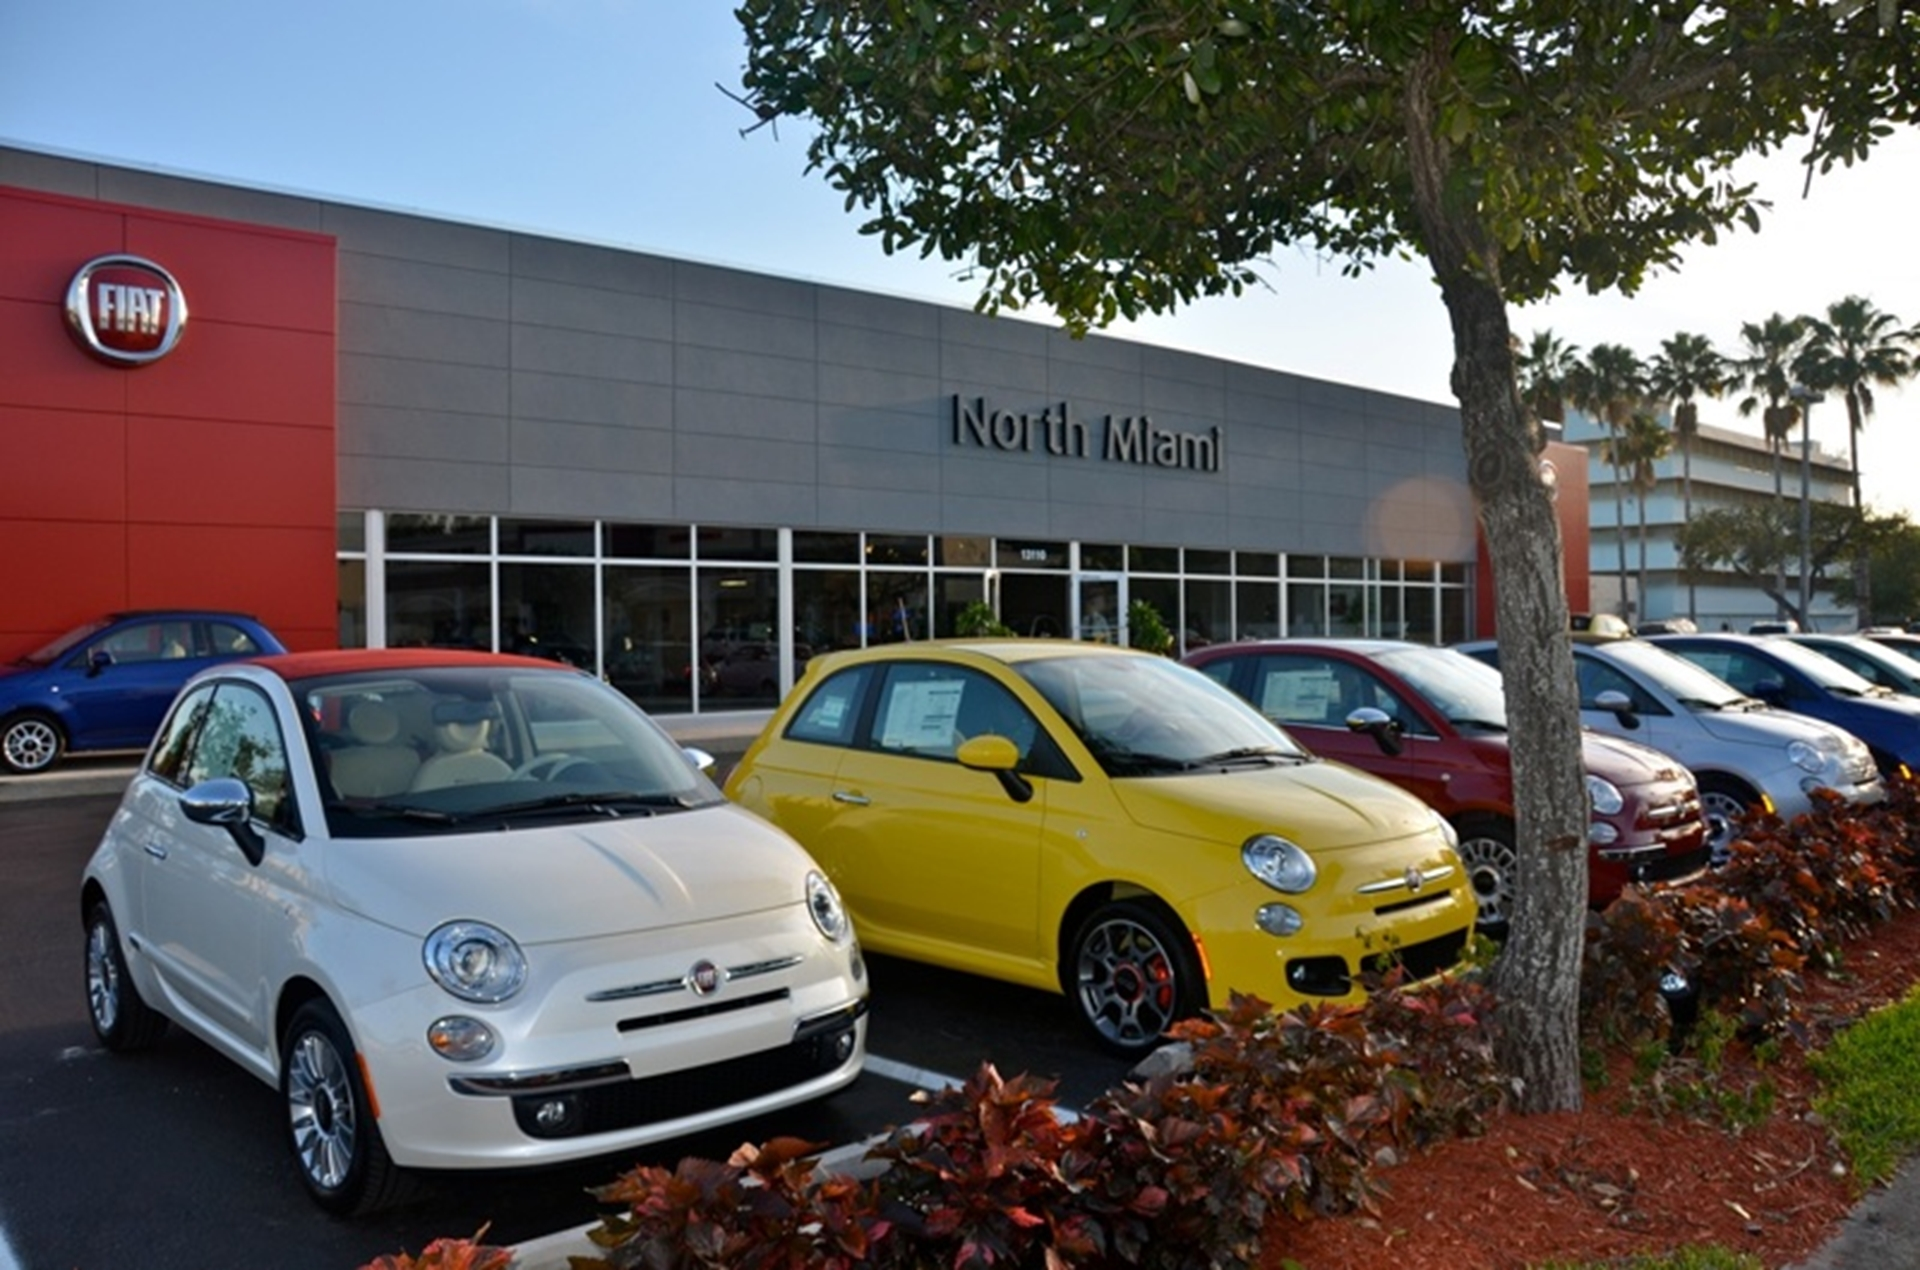 FIAT Of North Miami To Celebrate Grand Opening Tonight With Fashion - Car shows tonight